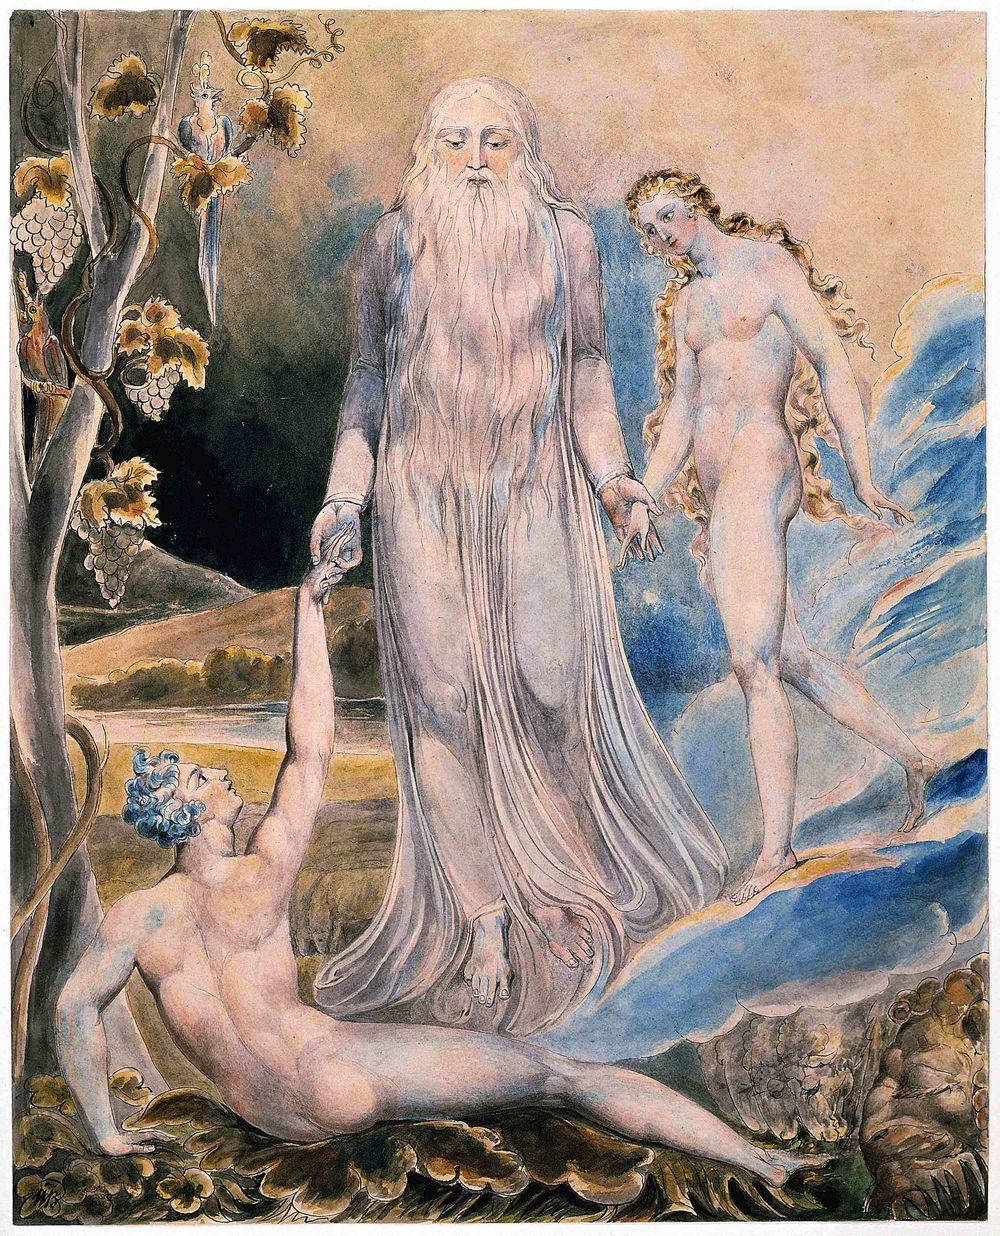 The depiction of the Christian creation myth, by William Blake